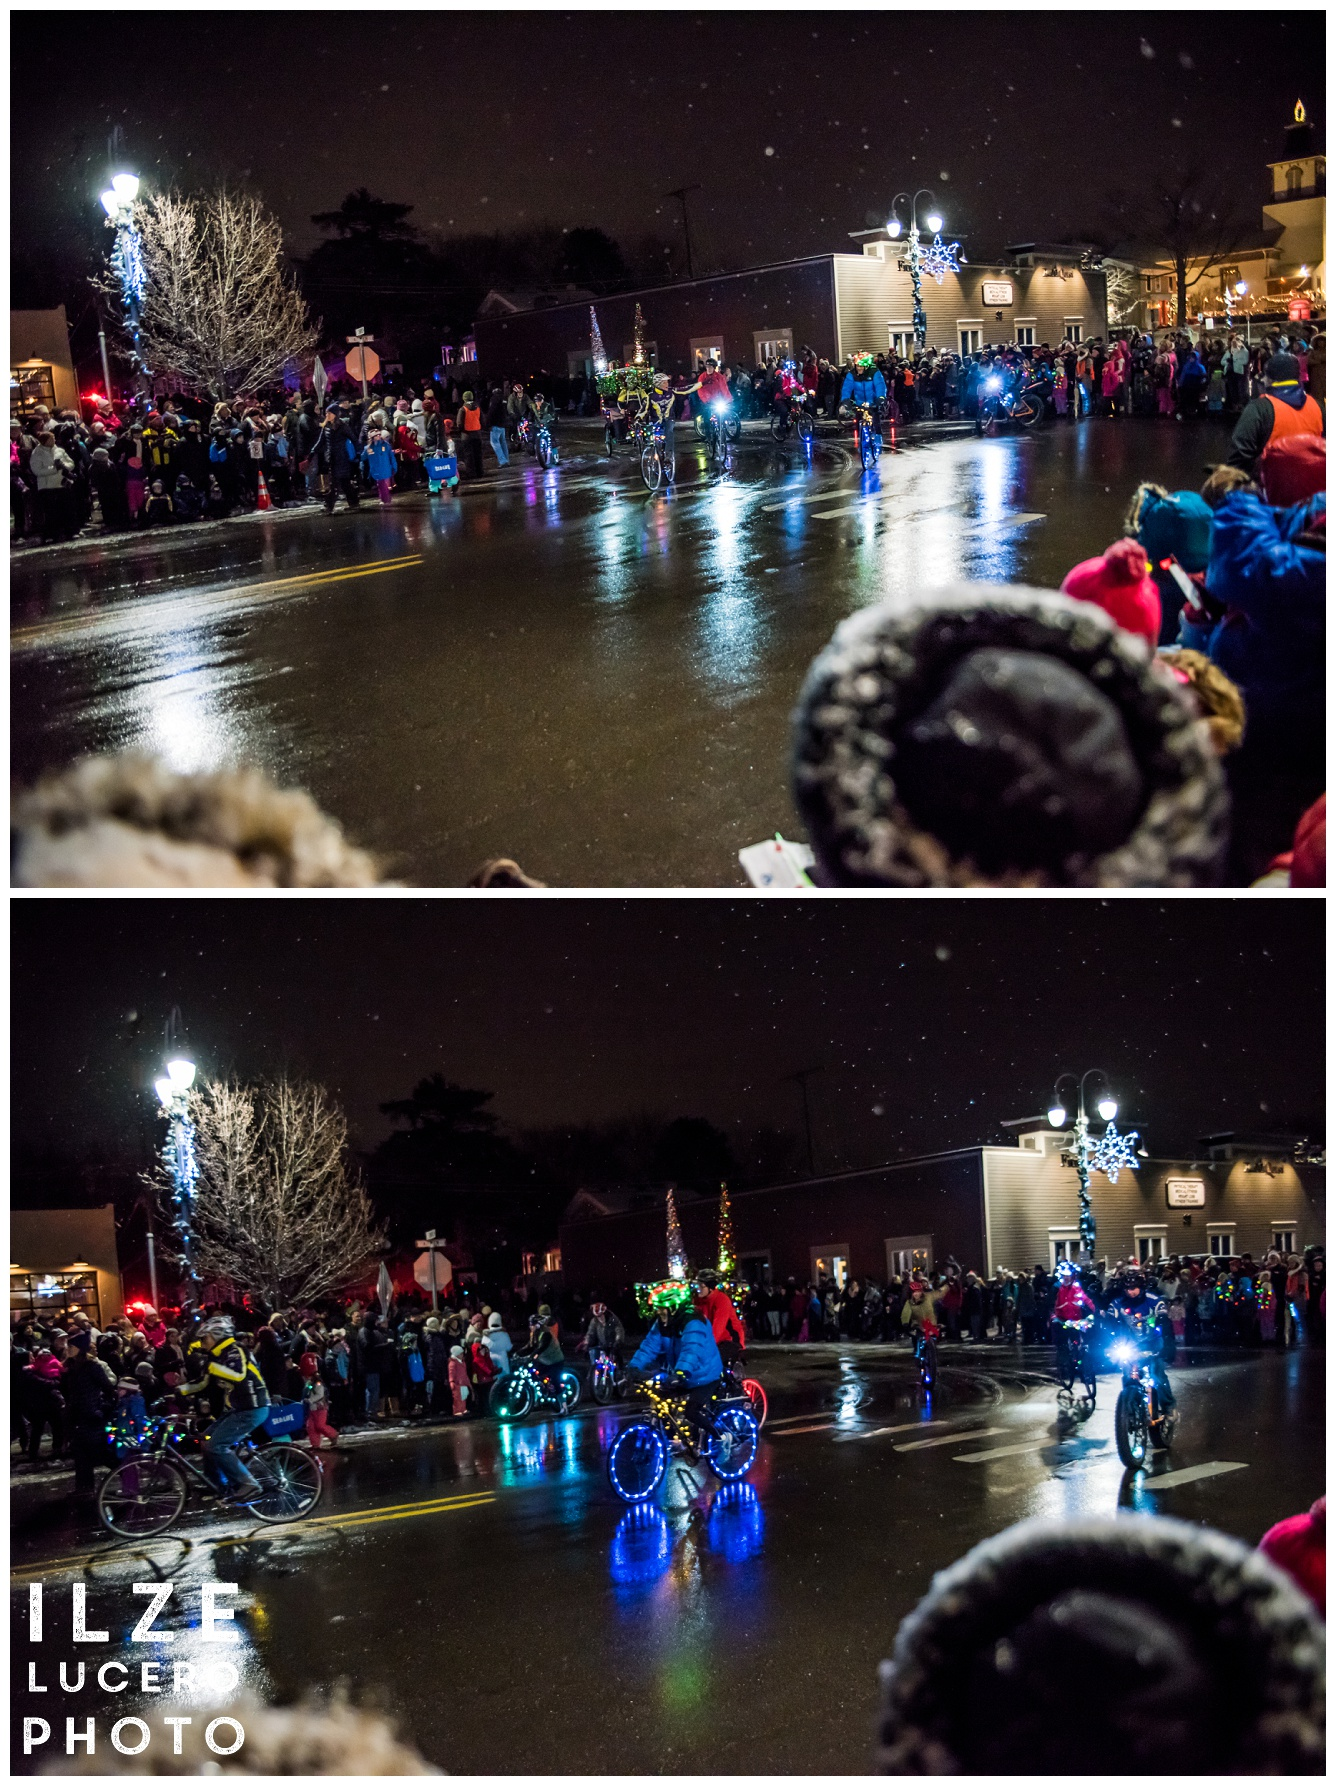 Clarlston Lights Parade